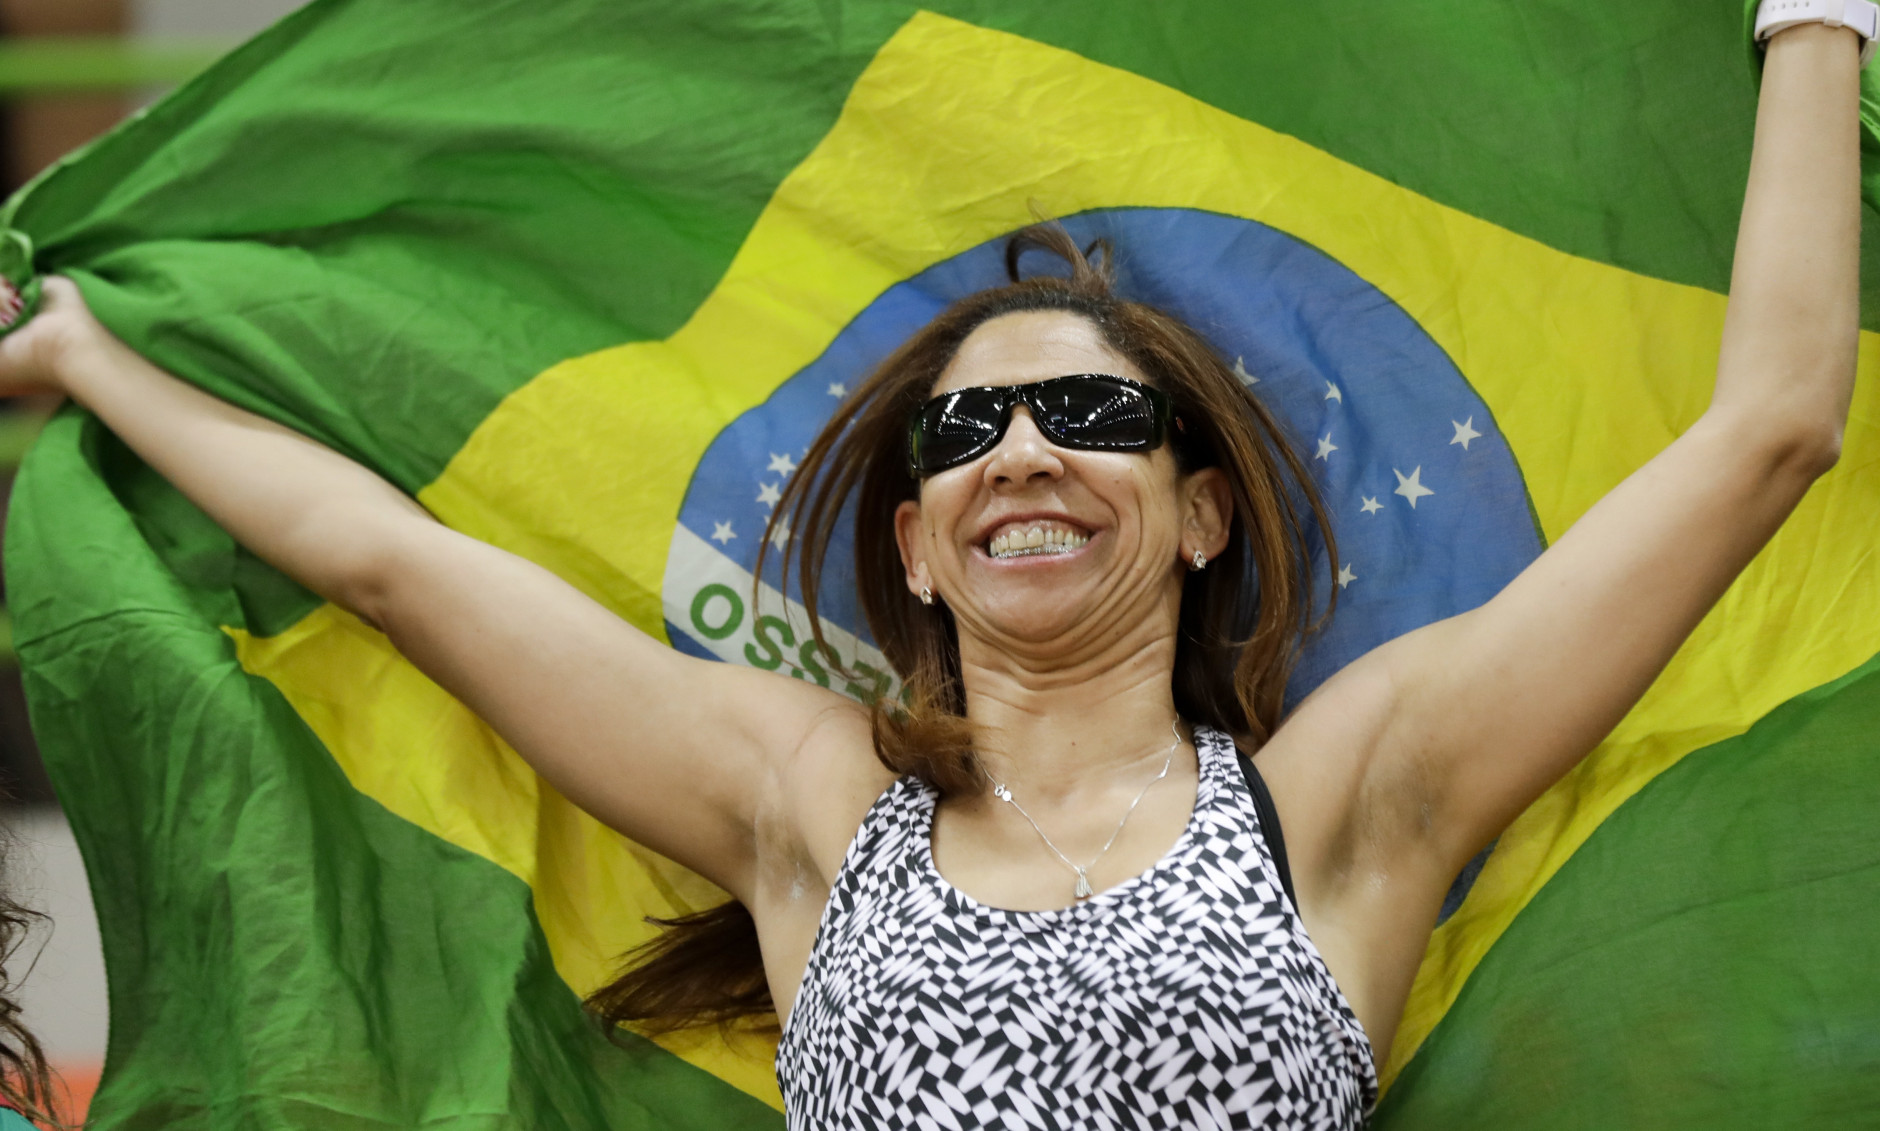 A fan waves a Brazilian flag before the women's preliminary handball match between Norway and Brazil at the 2016 Summer Olympics in Rio de Janeiro, Brazil, Saturday, Aug. 6, 2016. (AP Photo/Ben Curtis)